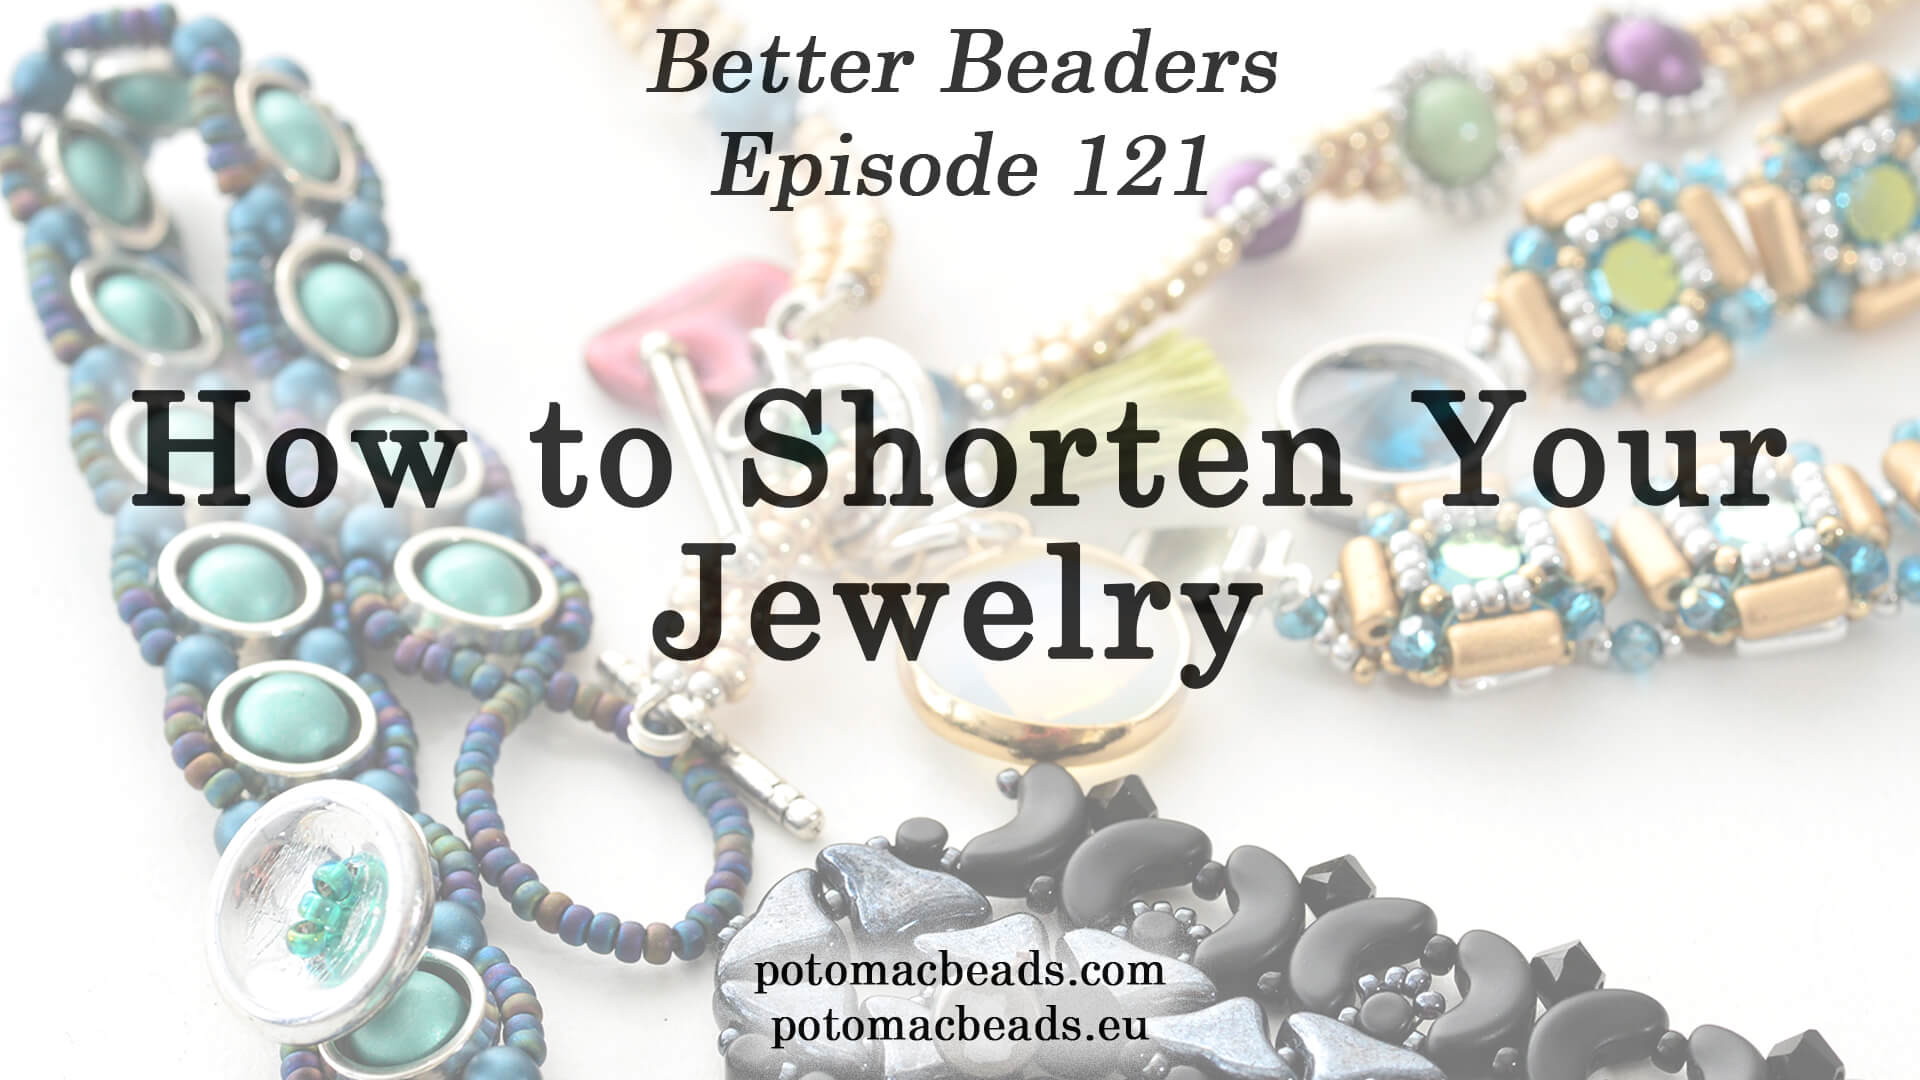 How to Bead / Better Beader Episodes / Better Beader Episode 121.5 - How to Shorten Your Jewelry